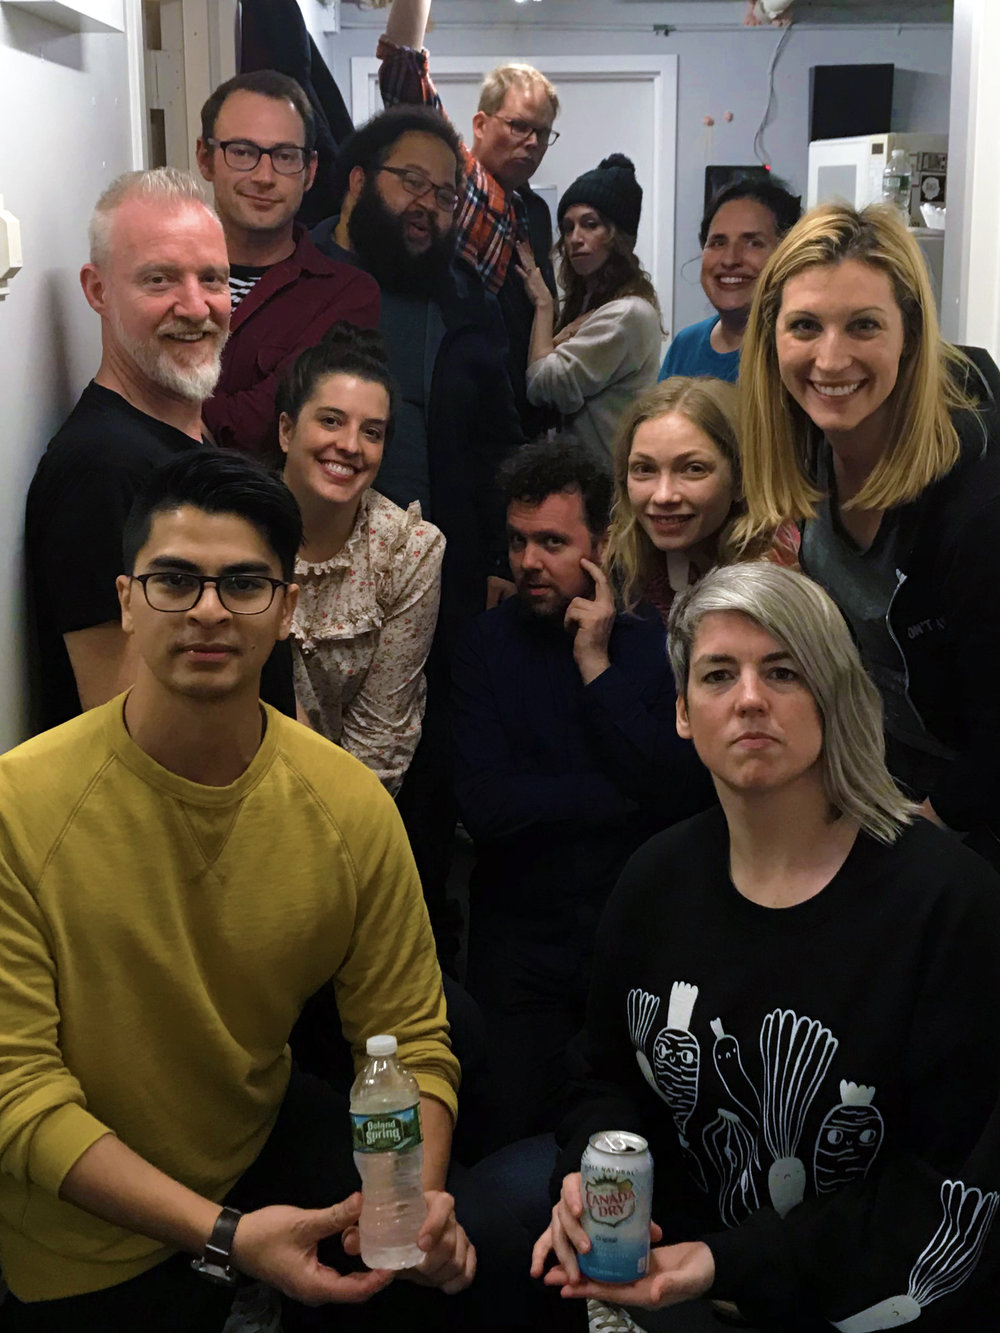 Monologists: Chris Barron, Tavi Gevinson